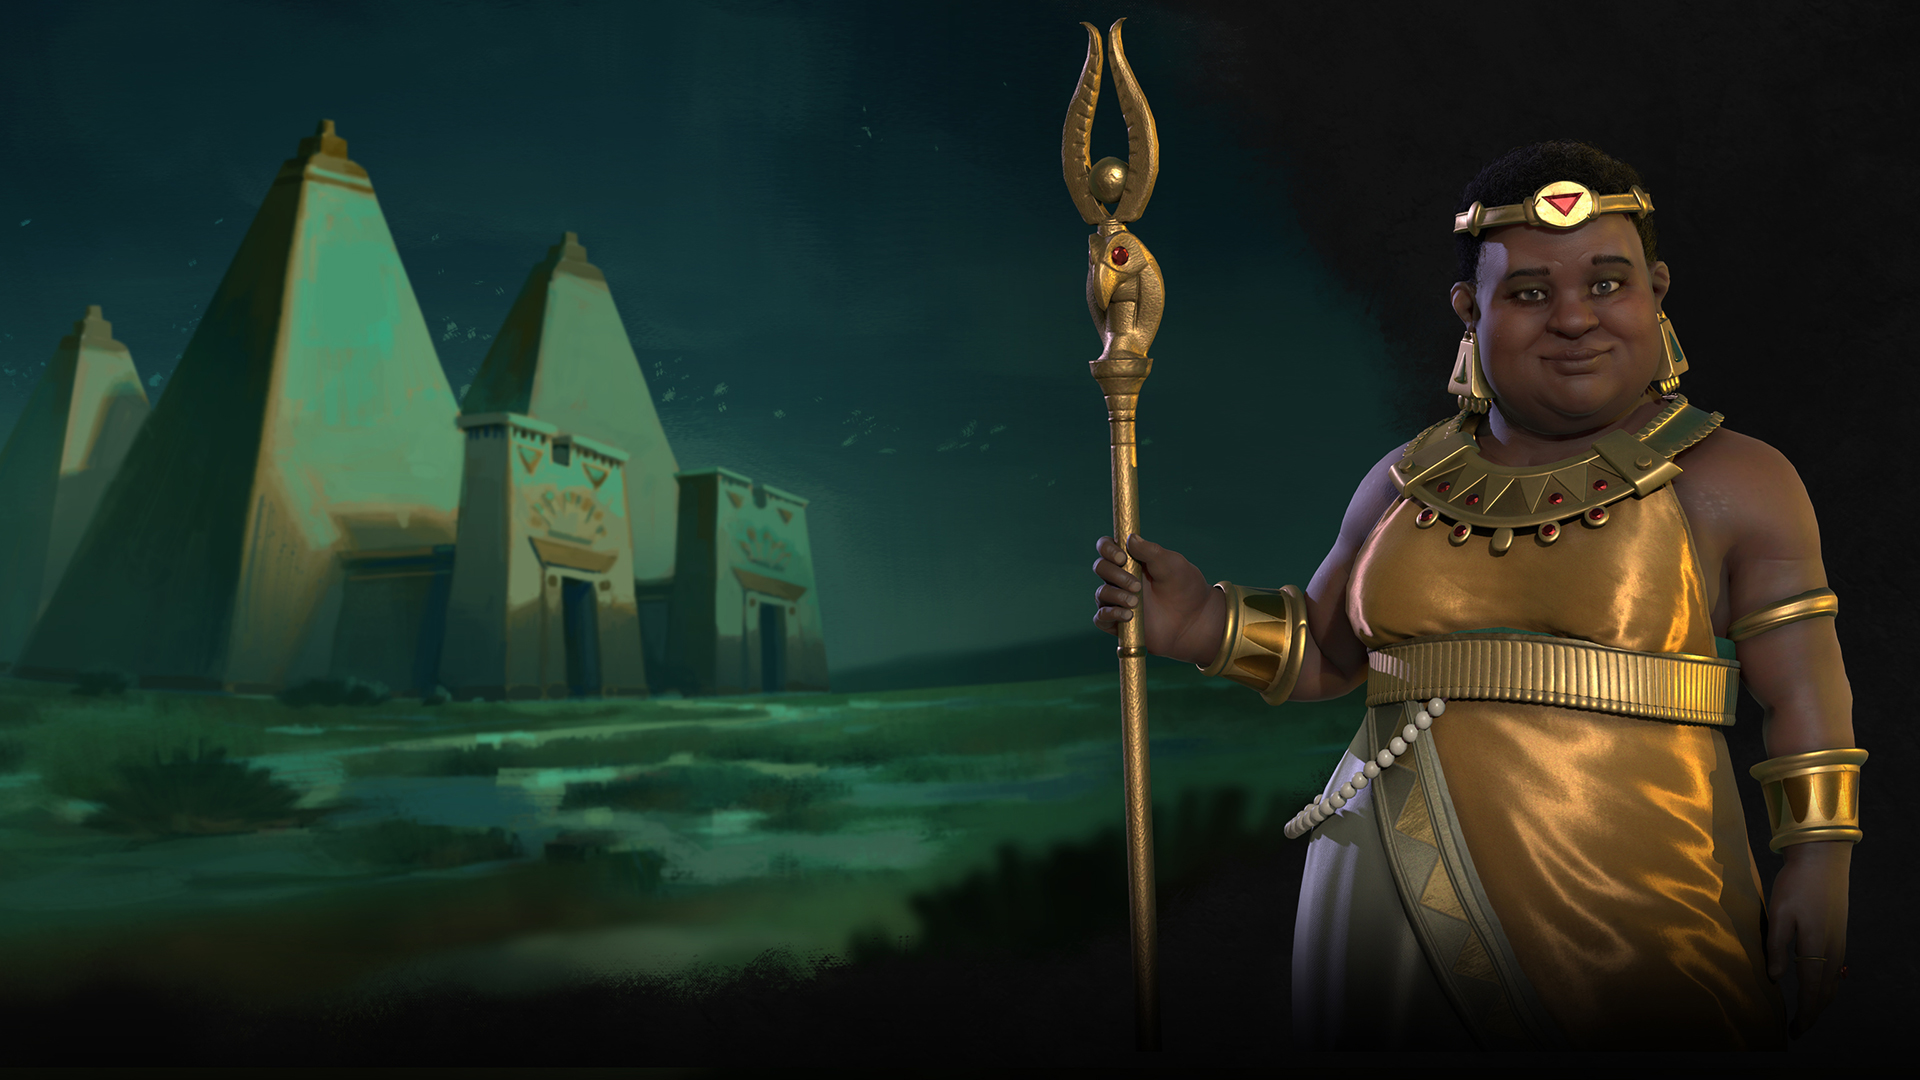 civilization_vi_nubia_hero.jpg